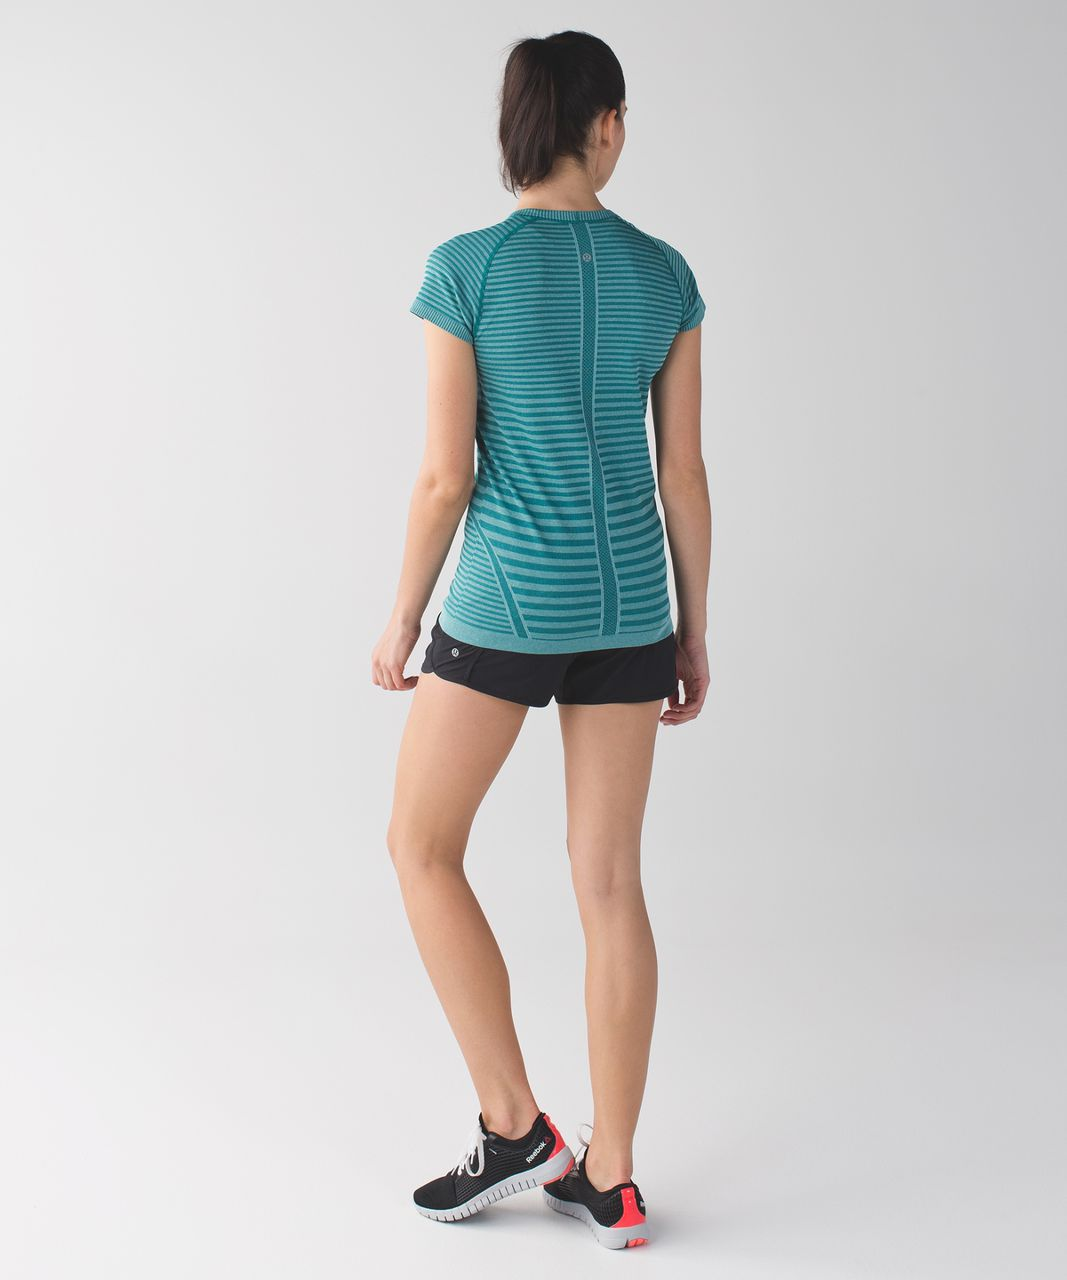 Lululemon Swiftly Tech Short Sleeve Crew - Heathered Forage Teal (Striped)